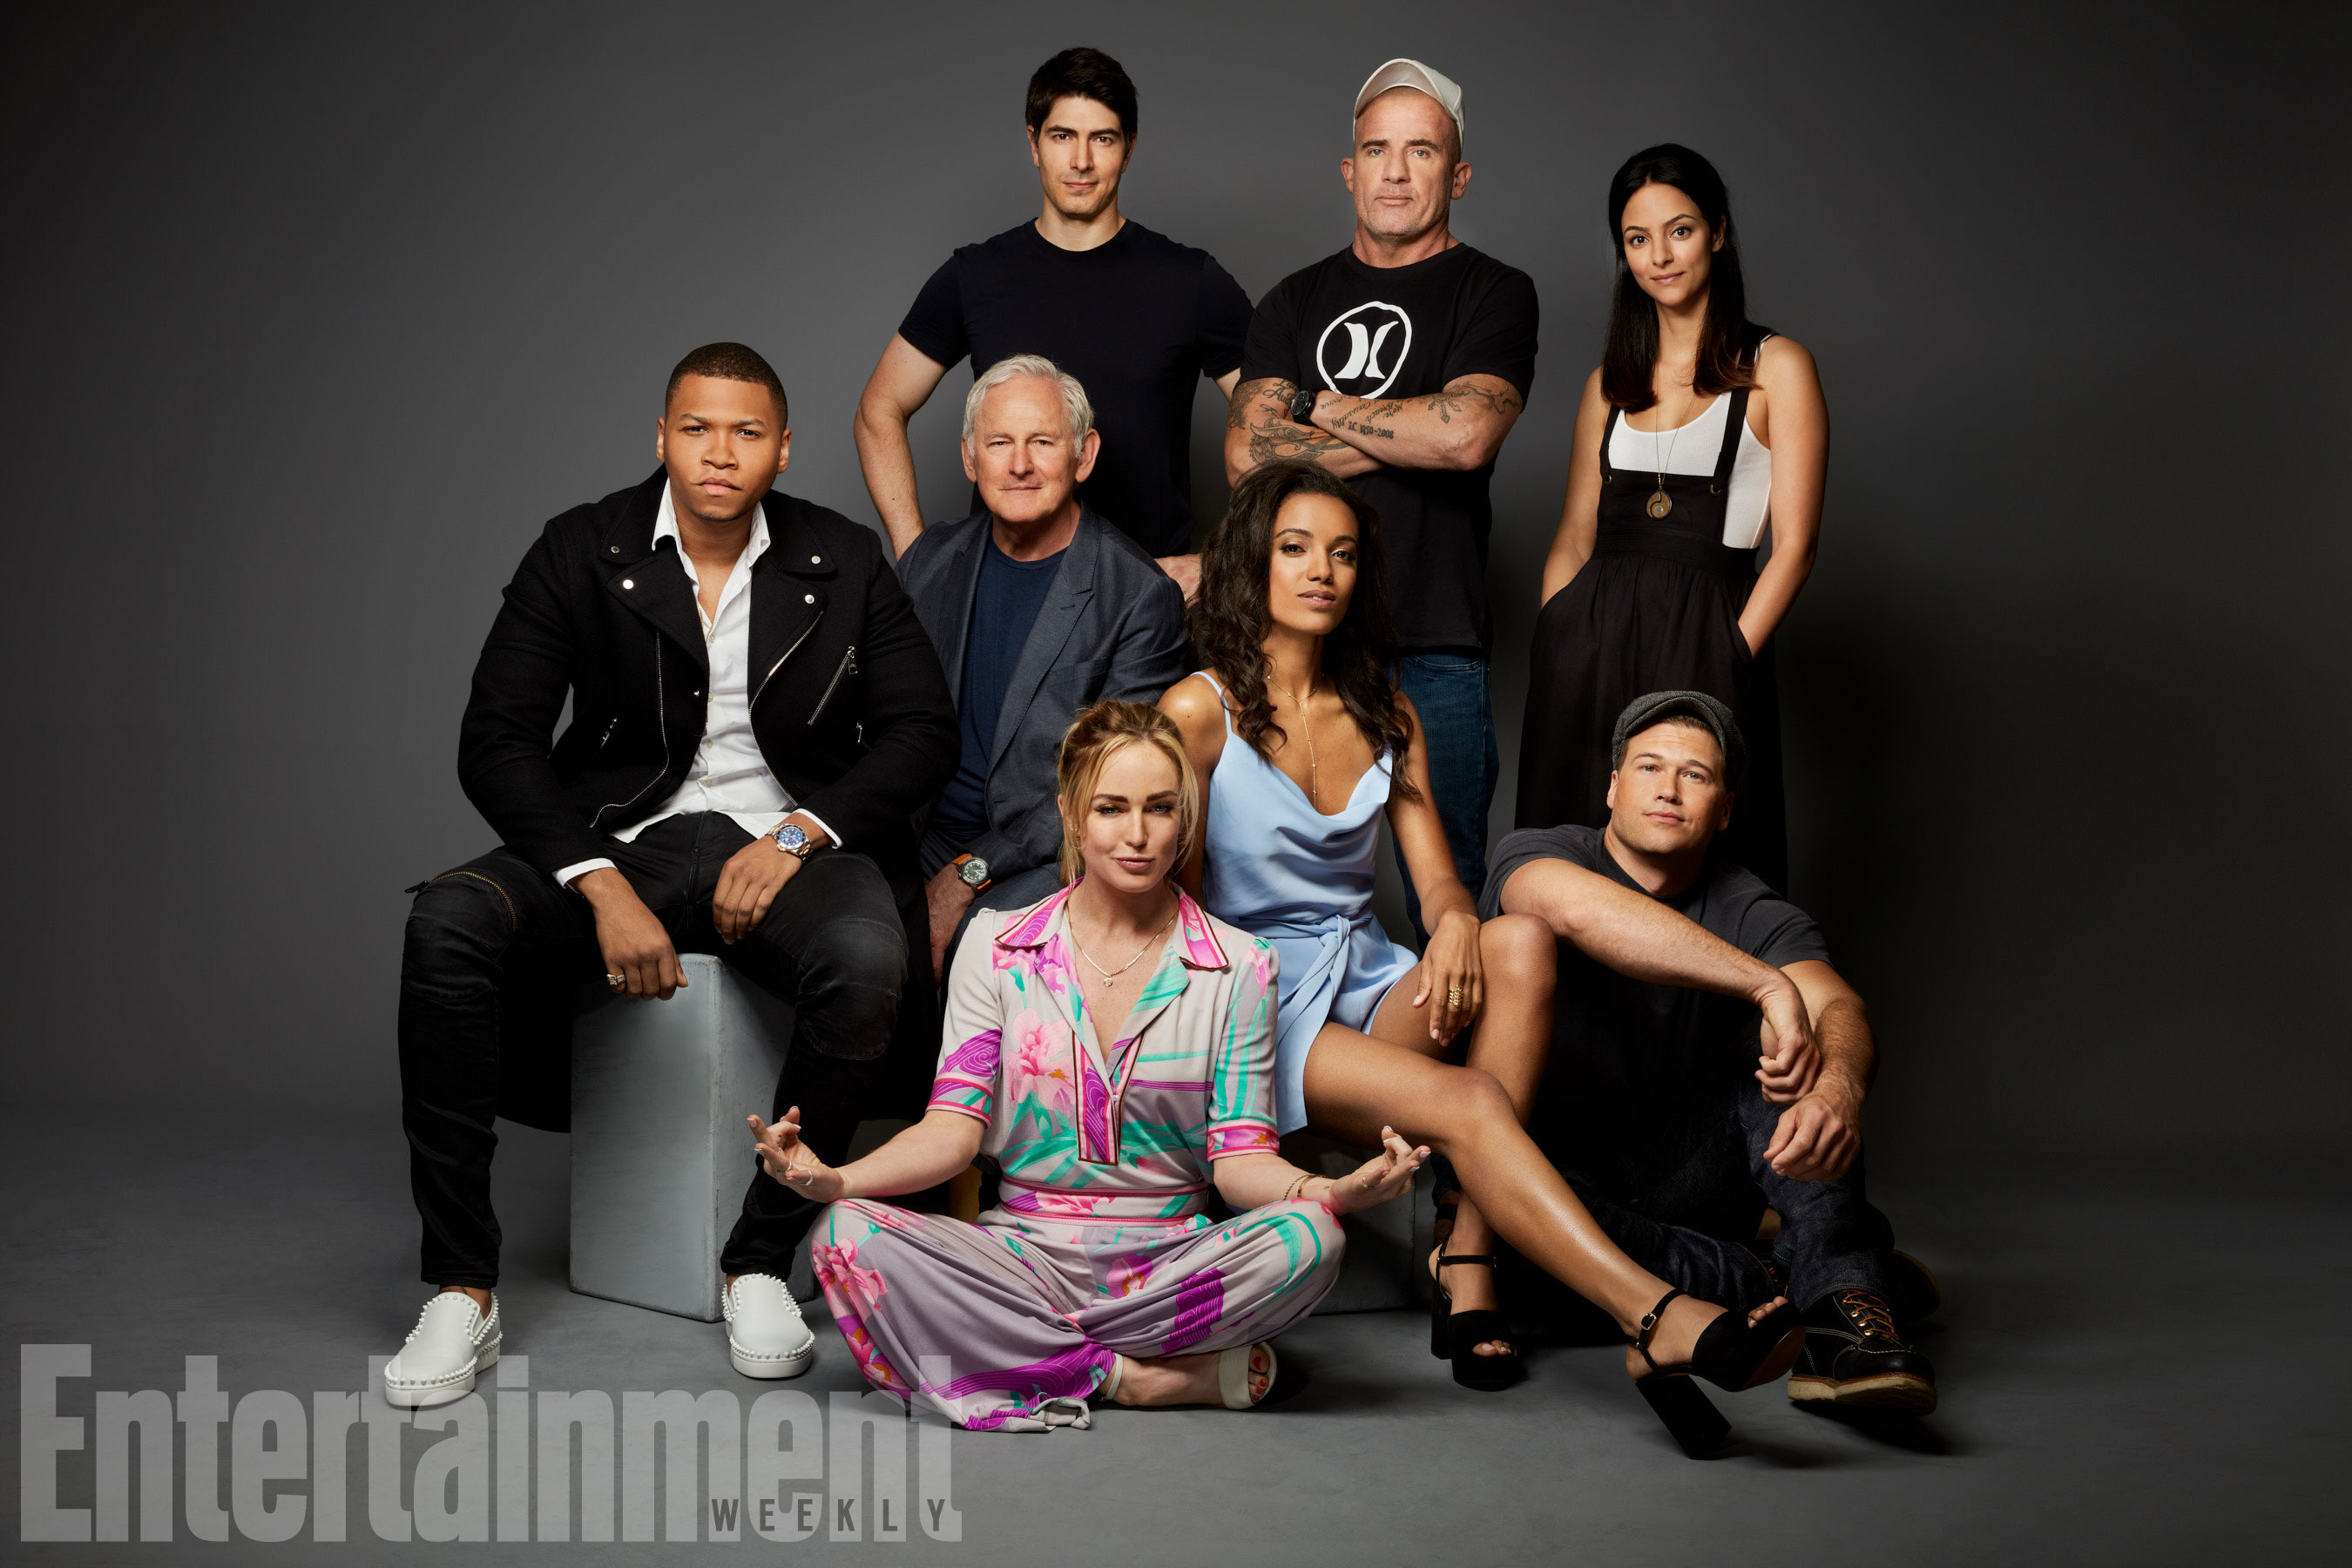 Tala Ashe, Brandon Routh, Dominic Purcell, Franz Drameh, Victor Garber, Caity Lotz, Maisie Richardson-Sellers, Nick Zano (DC's Legends of Tomorrow)